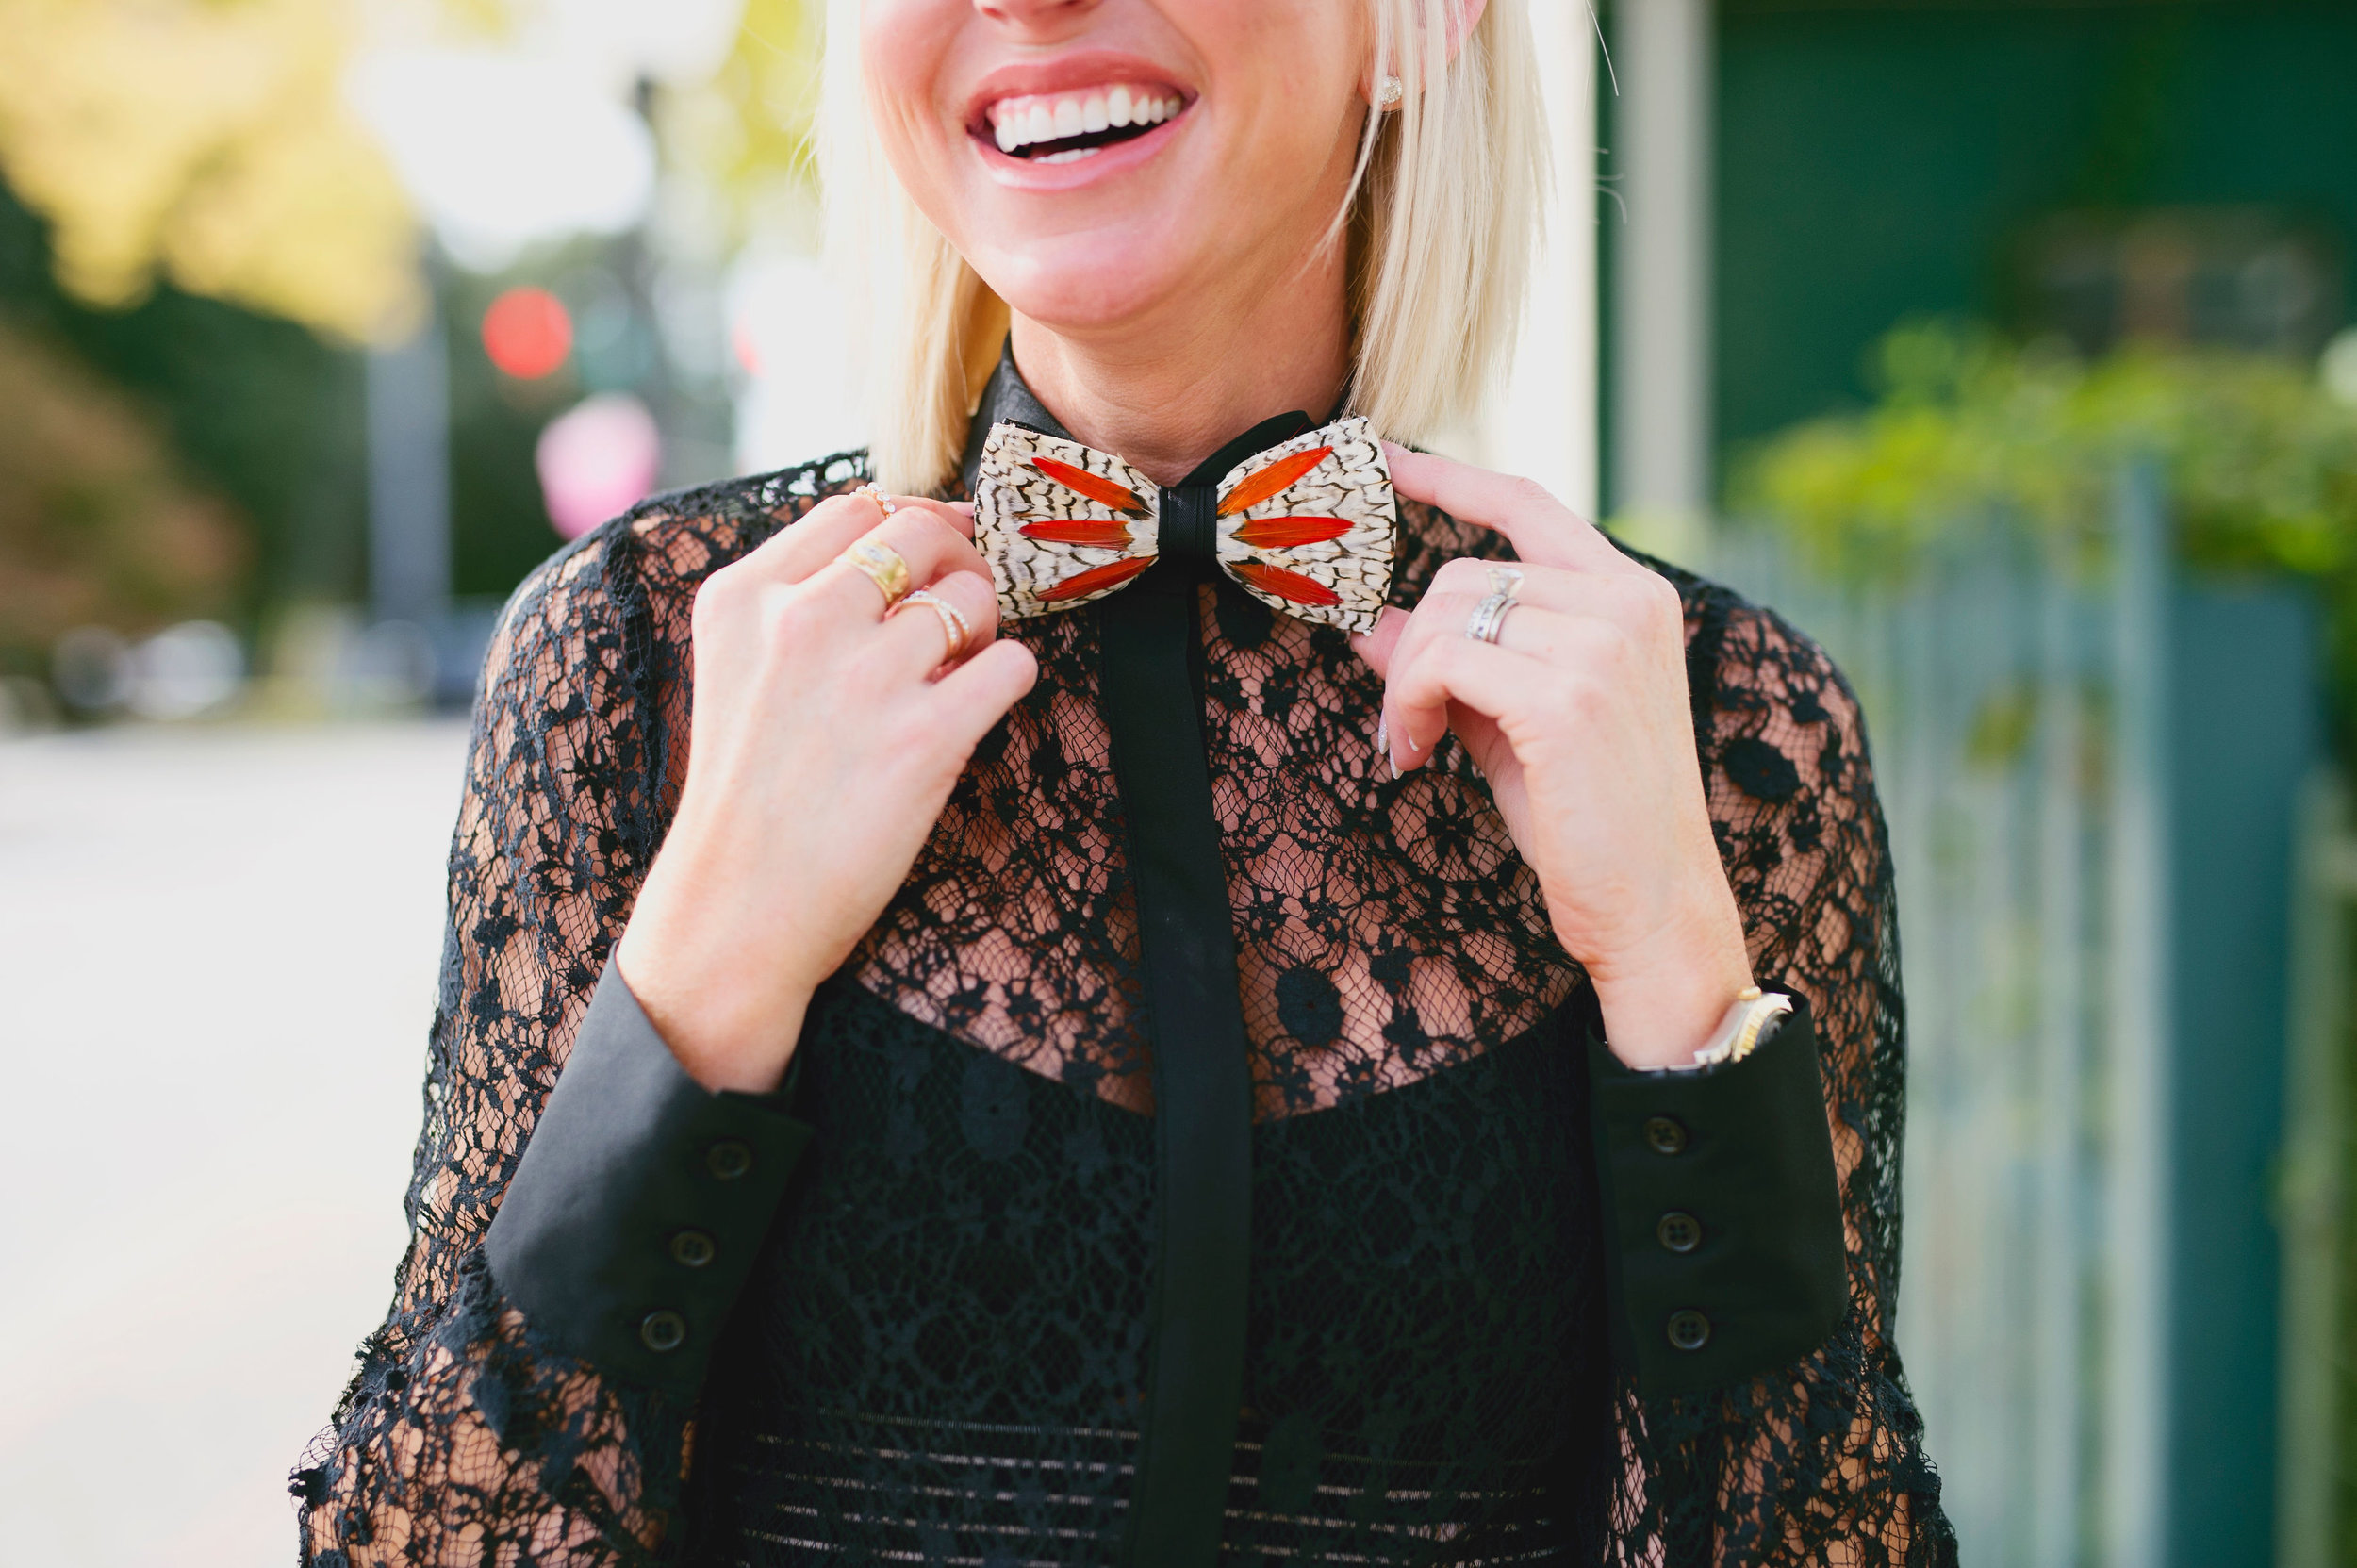 Since we have taken a closer look at breaking the normal bow tie boundaries, let's make our own boundaries. -